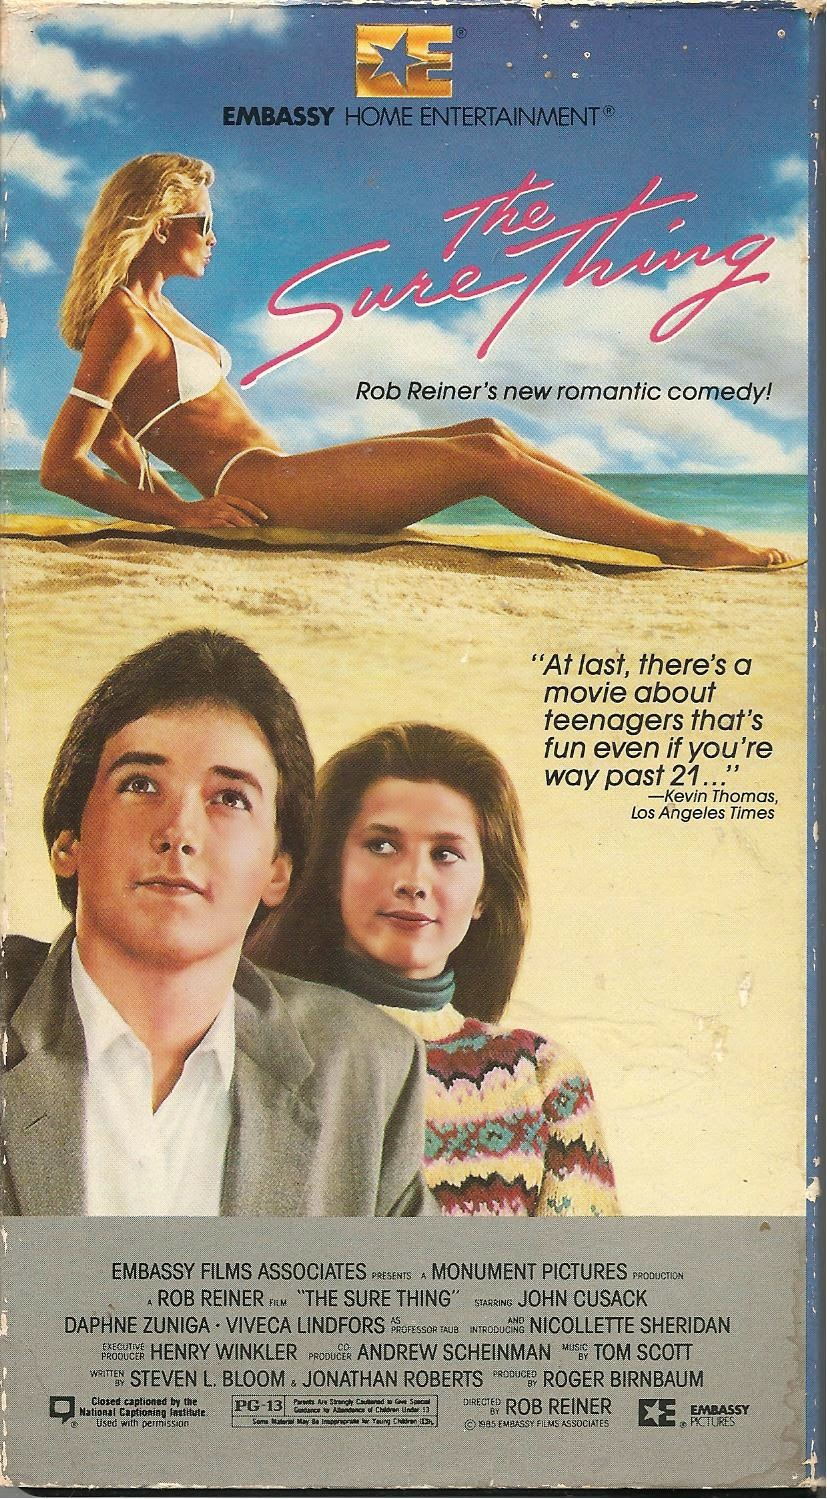 The Sure Thing (1985) Comedy, Drama, Romance , Rated PG-13 : A college student plans a cross-country trip to get laid, but ends up traveling with a young woman. They hate each other, so naturally...